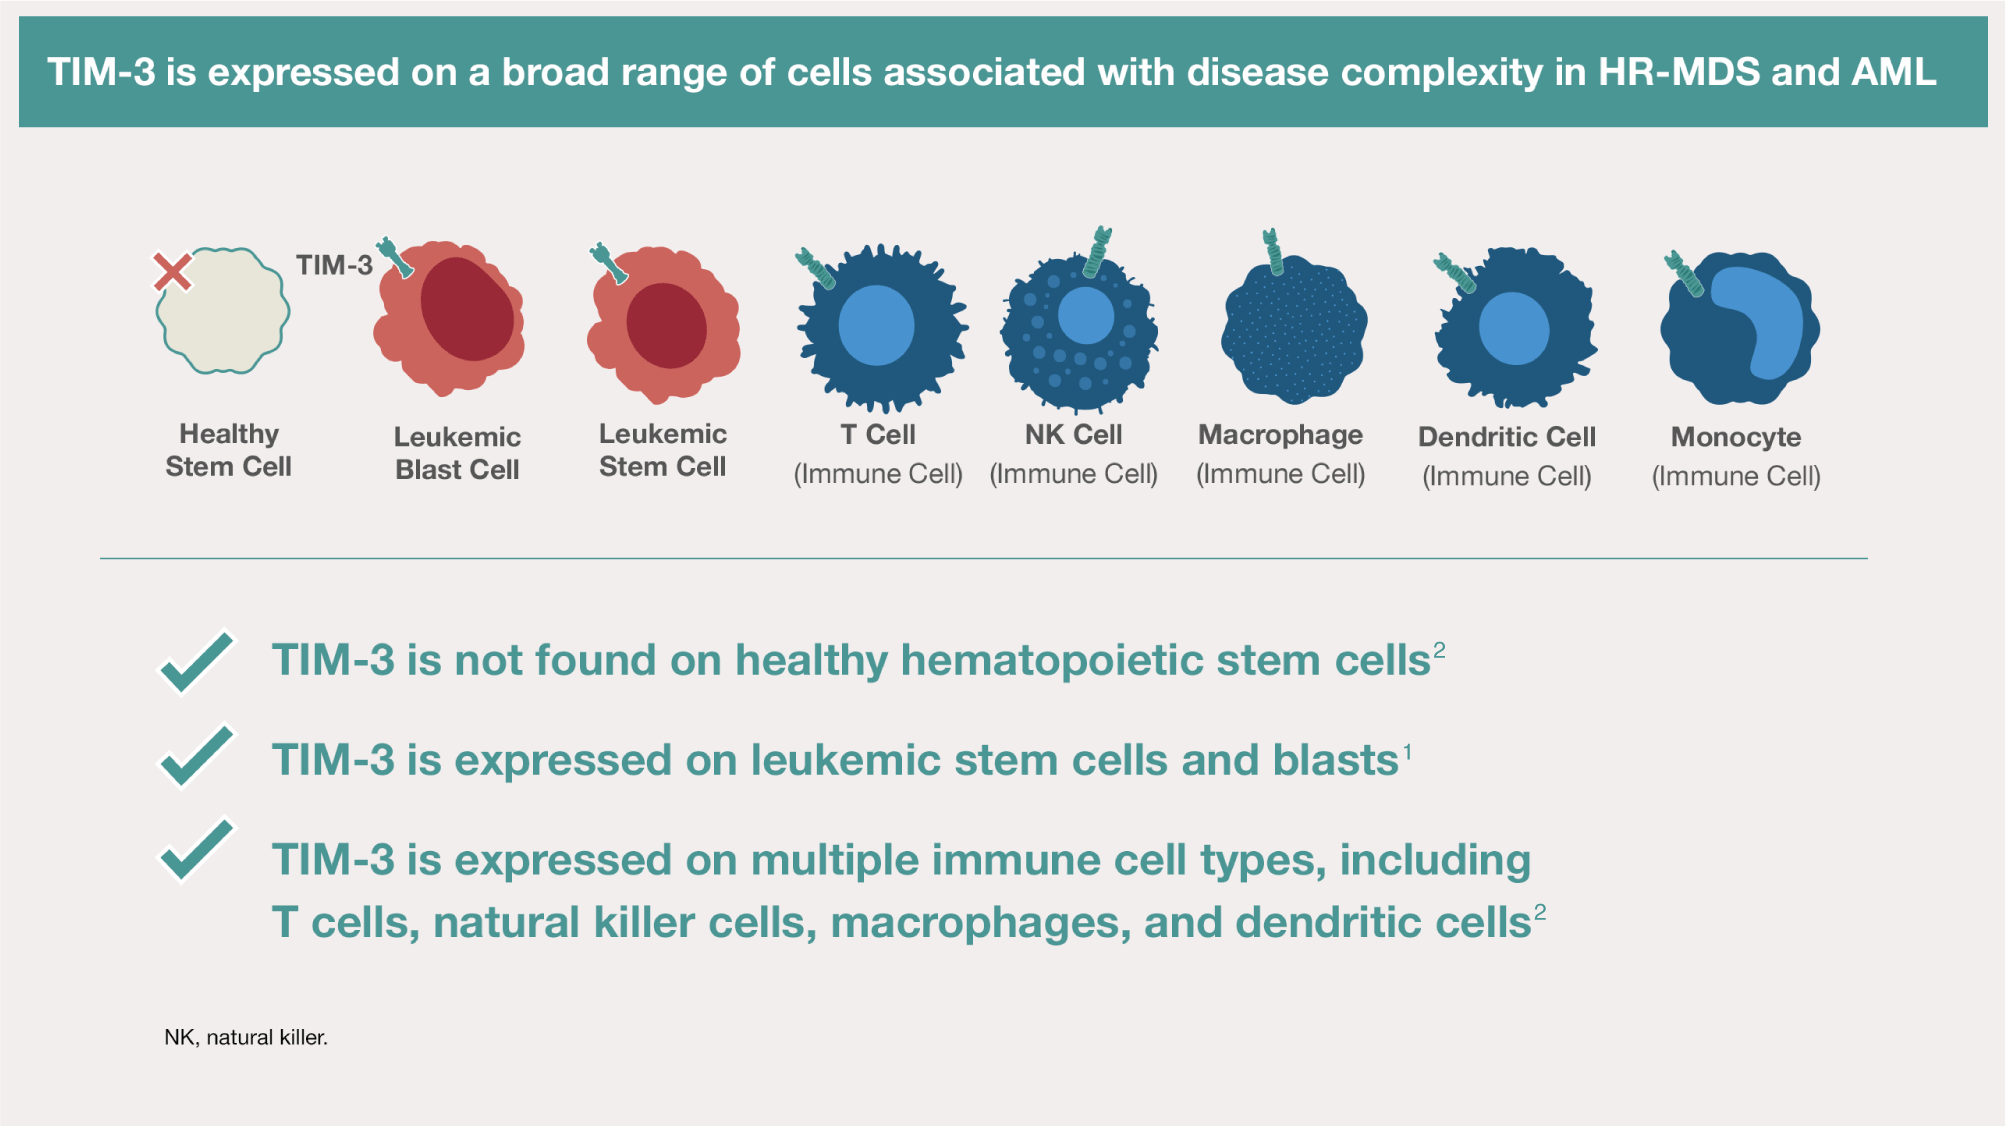 TIM-3 is expressed on multiple immune cell types, including T cells, natural killer cells, macrophages, and DCs